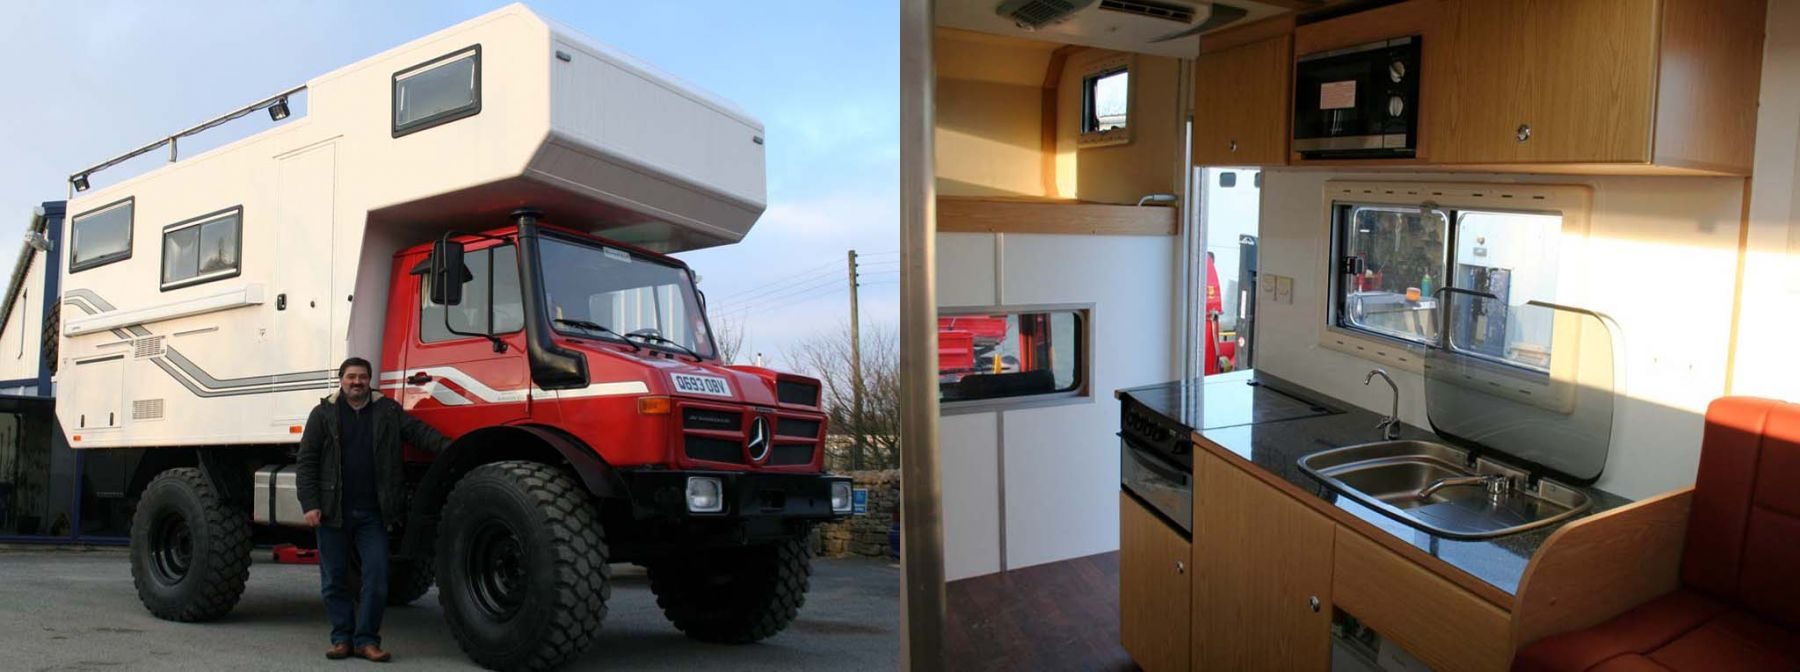 Huge U1300l Camper Given the Av Makeover